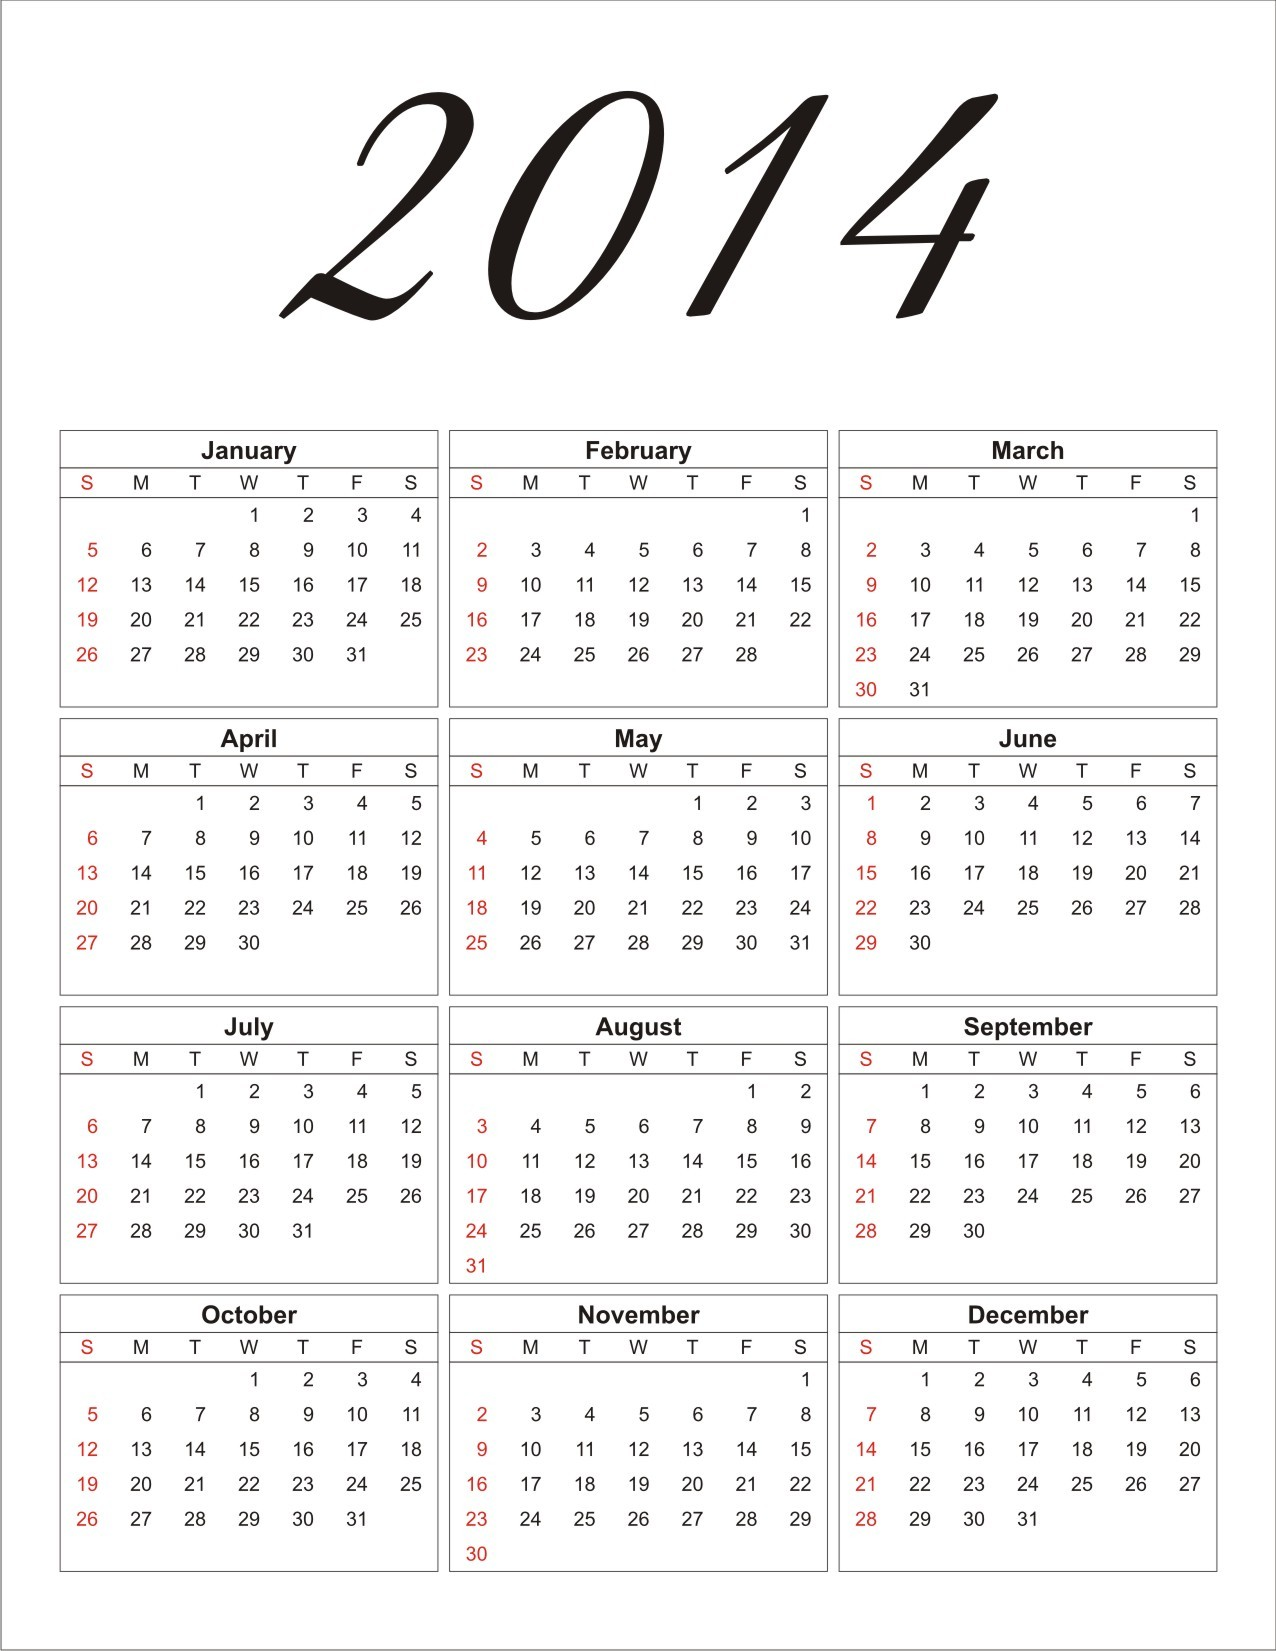 fillable calendar template 2014 - free 2014 printable calendar personalized party invites